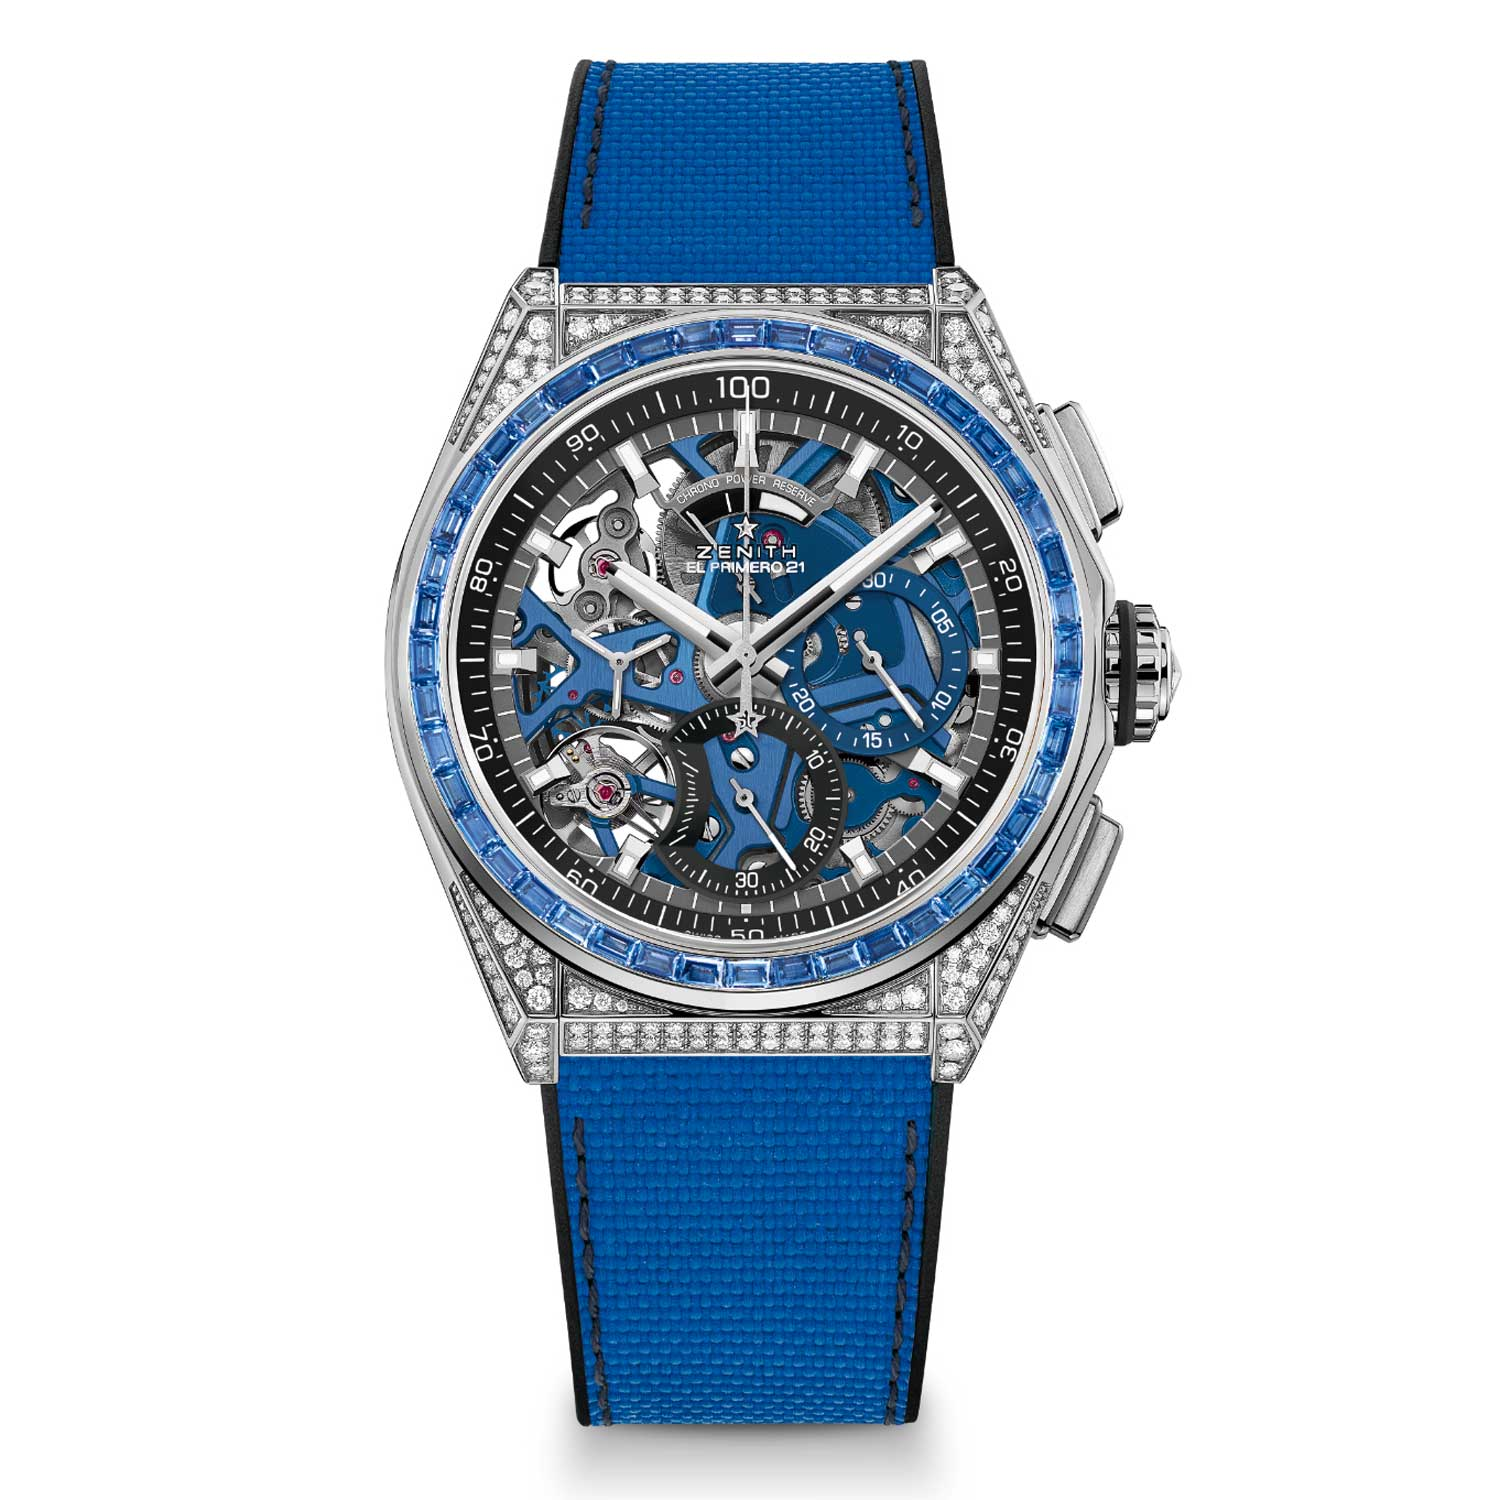 Each version features a bezel set with 44 baguette-cut precious stones, with matching coloured movements and rubber straps.